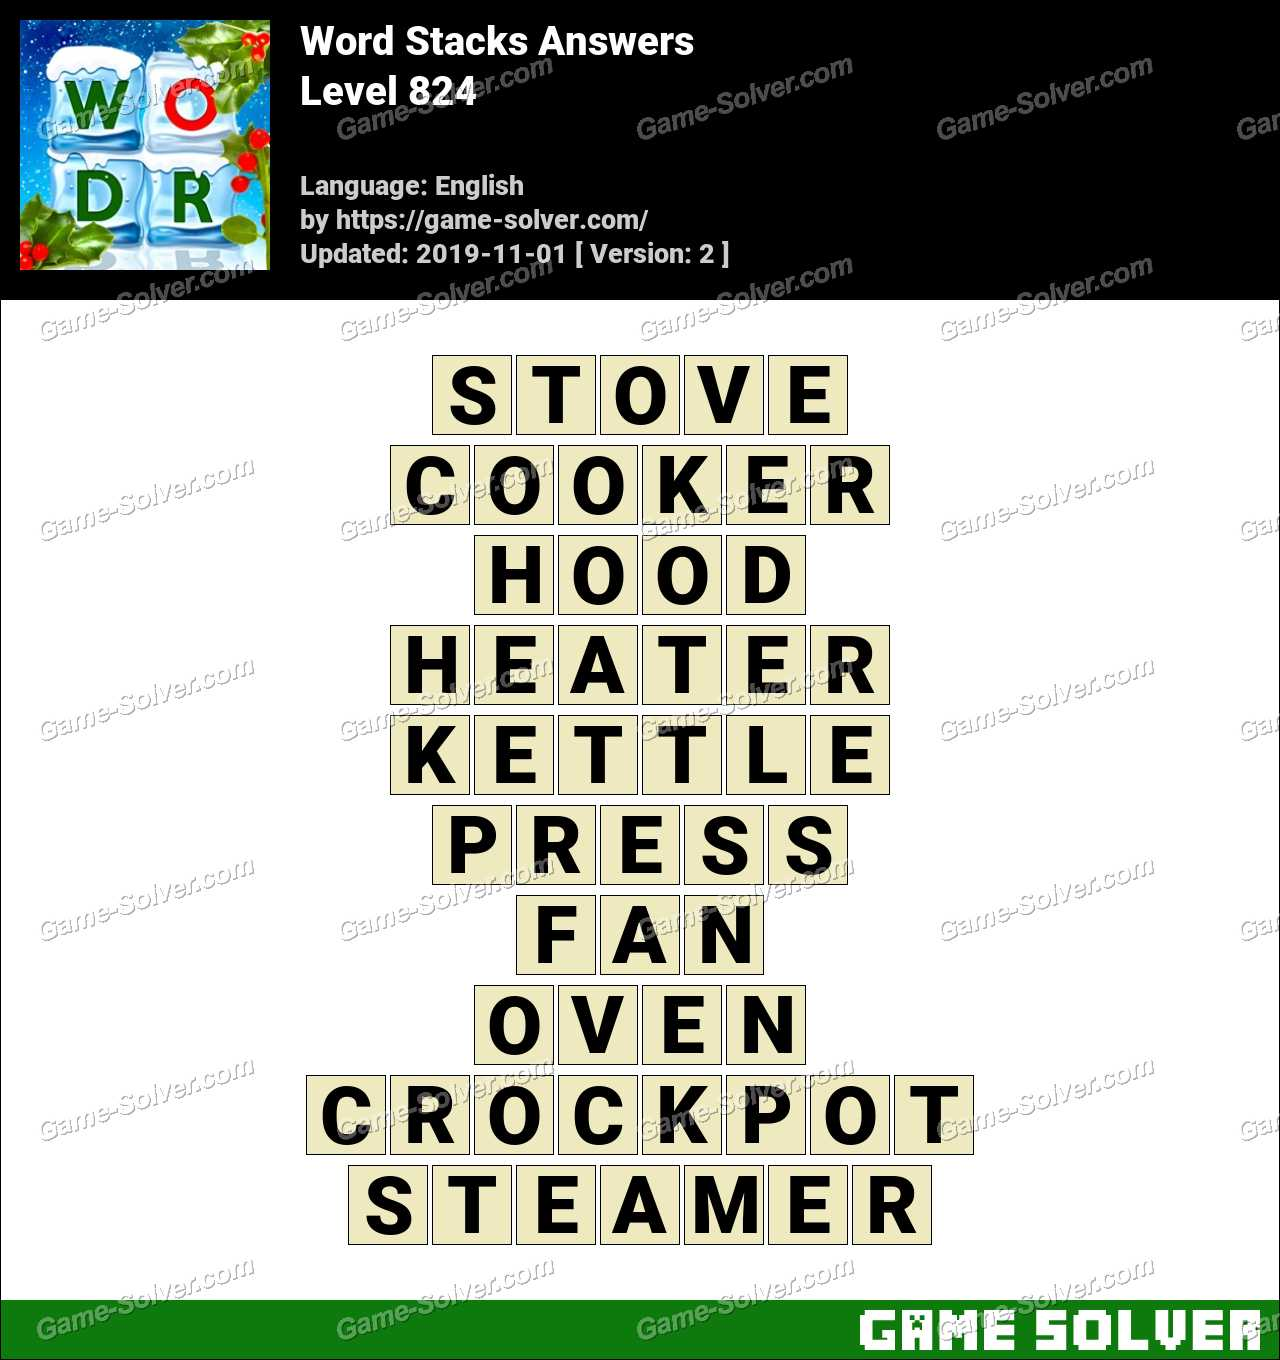 Word Stacks Level 824 Answers